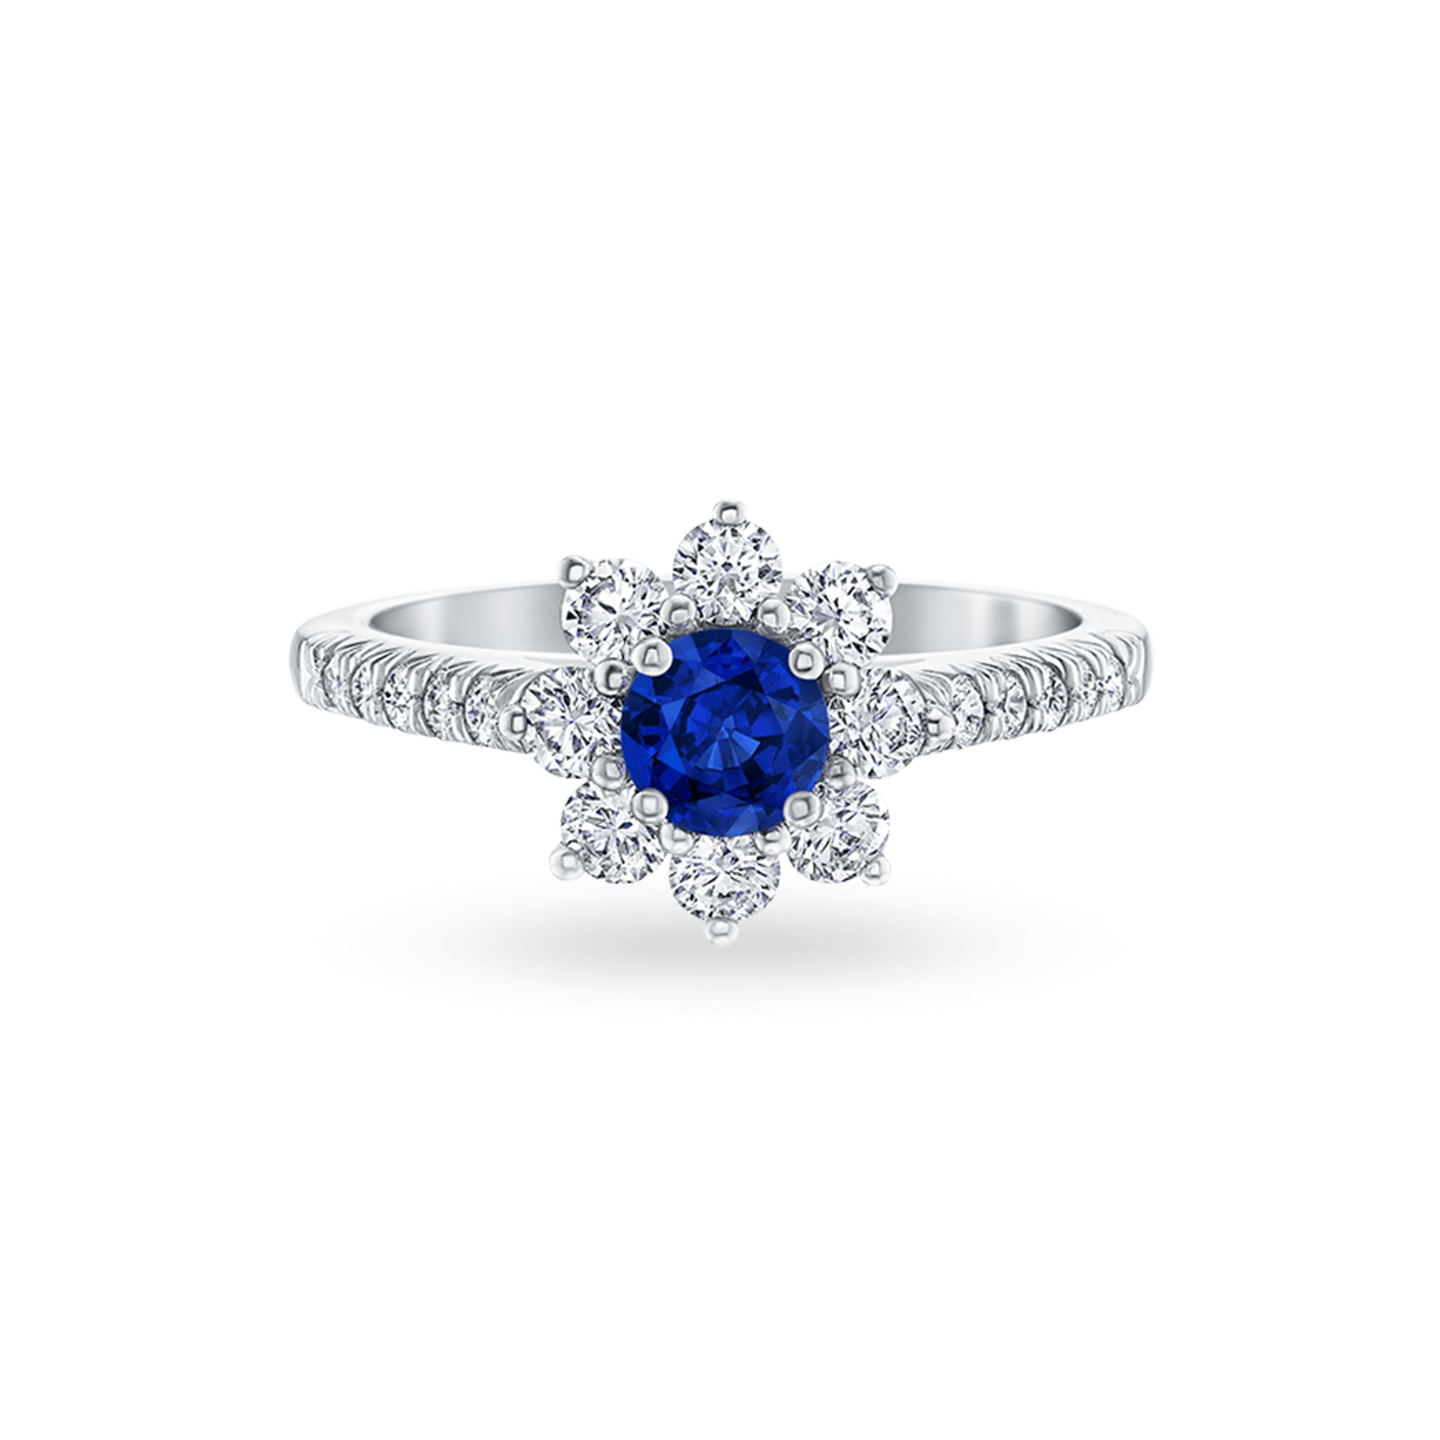 Sunflower Petite Sapphire and Diamond Ring, Product Image 1